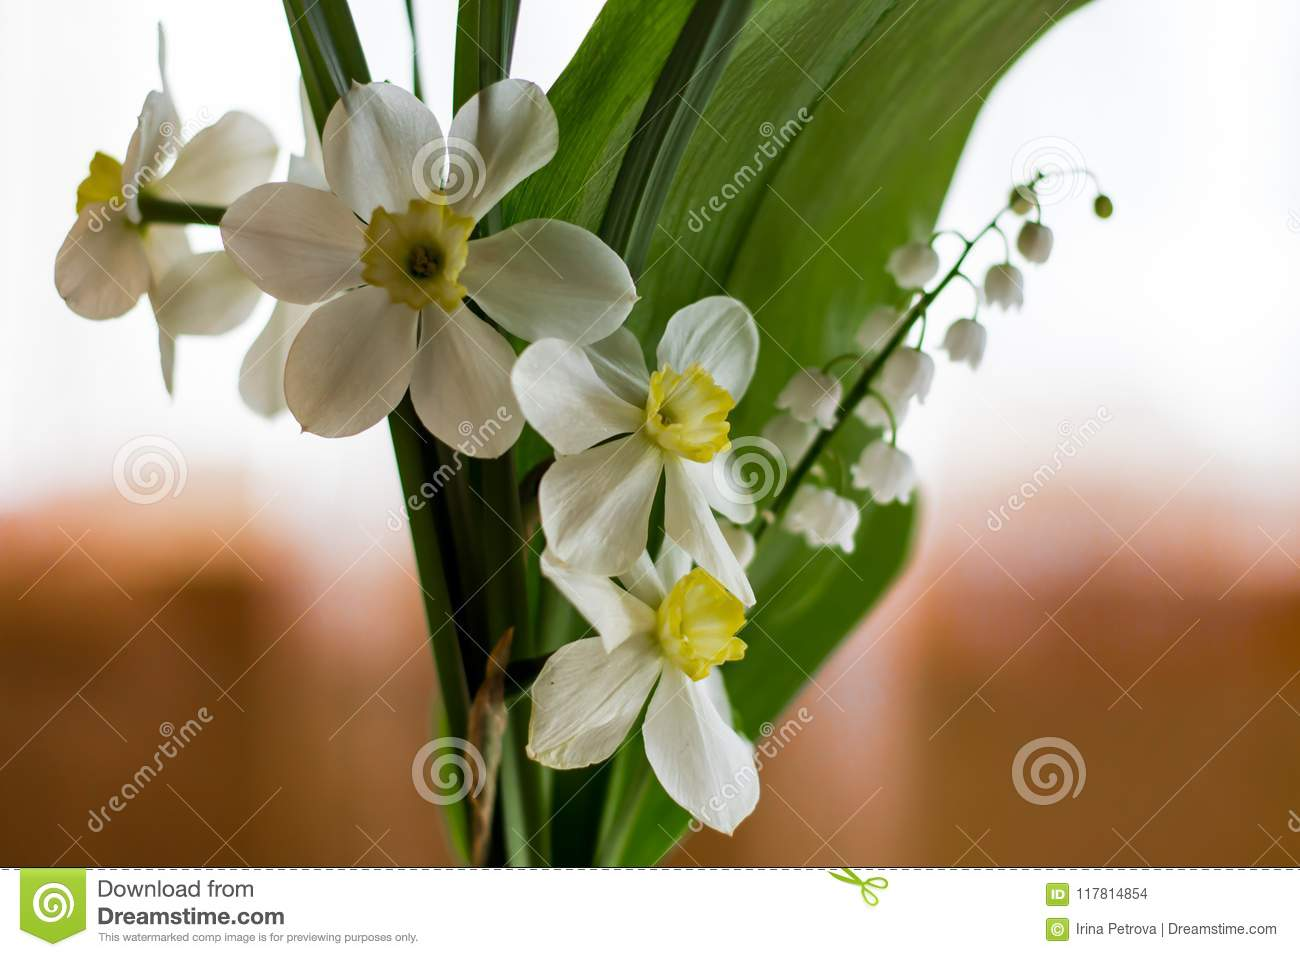 Spring Flowers Daffodils And Lilies Of The Valley In A Bouquet Stock